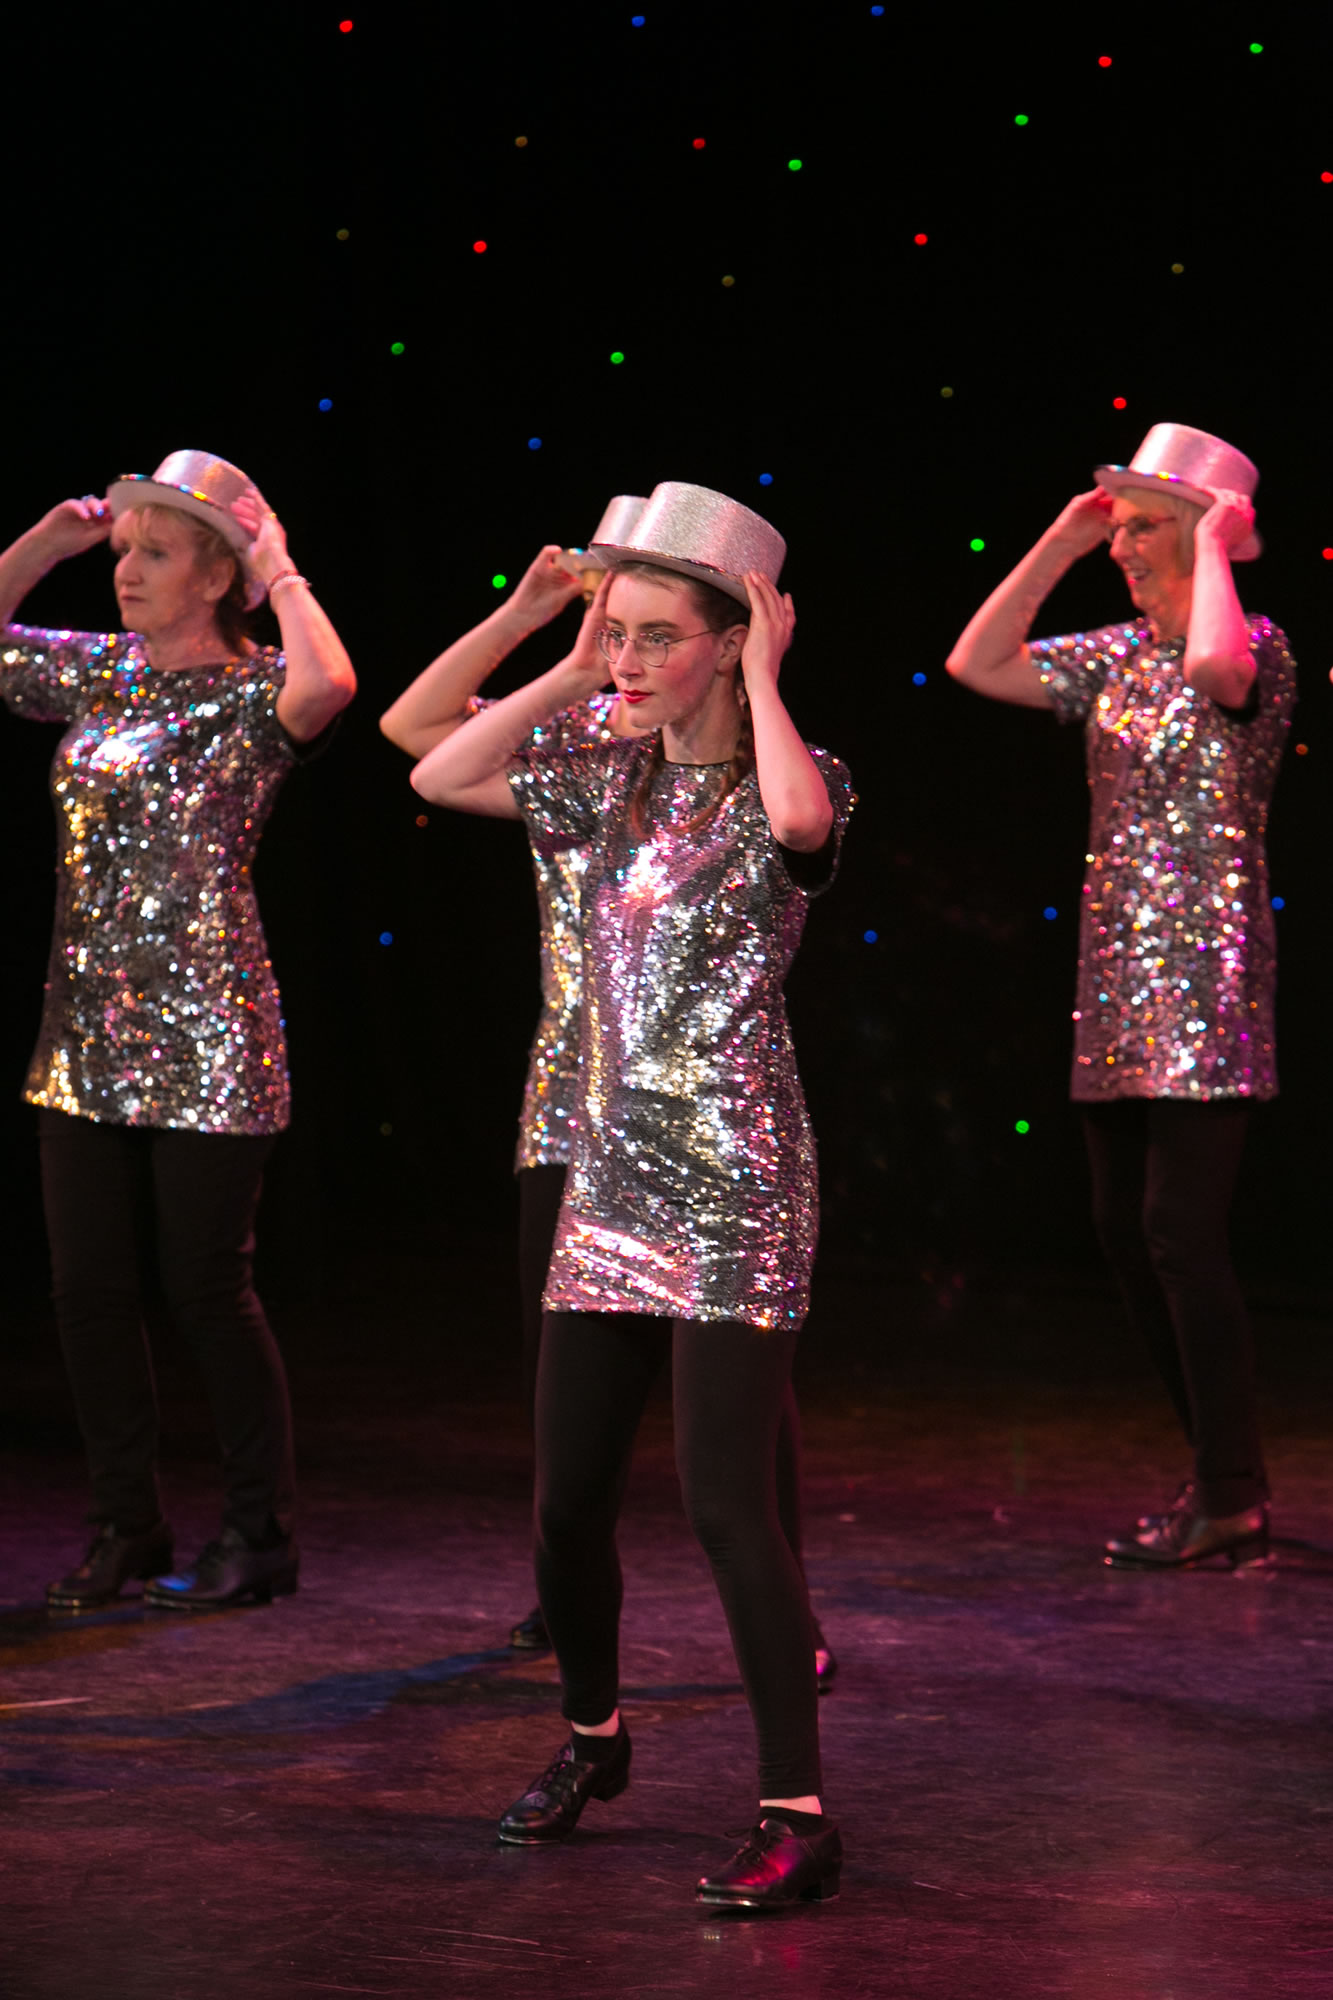 Hitchin_School_of_Dance_Show_2019-SM1_2914.jpg